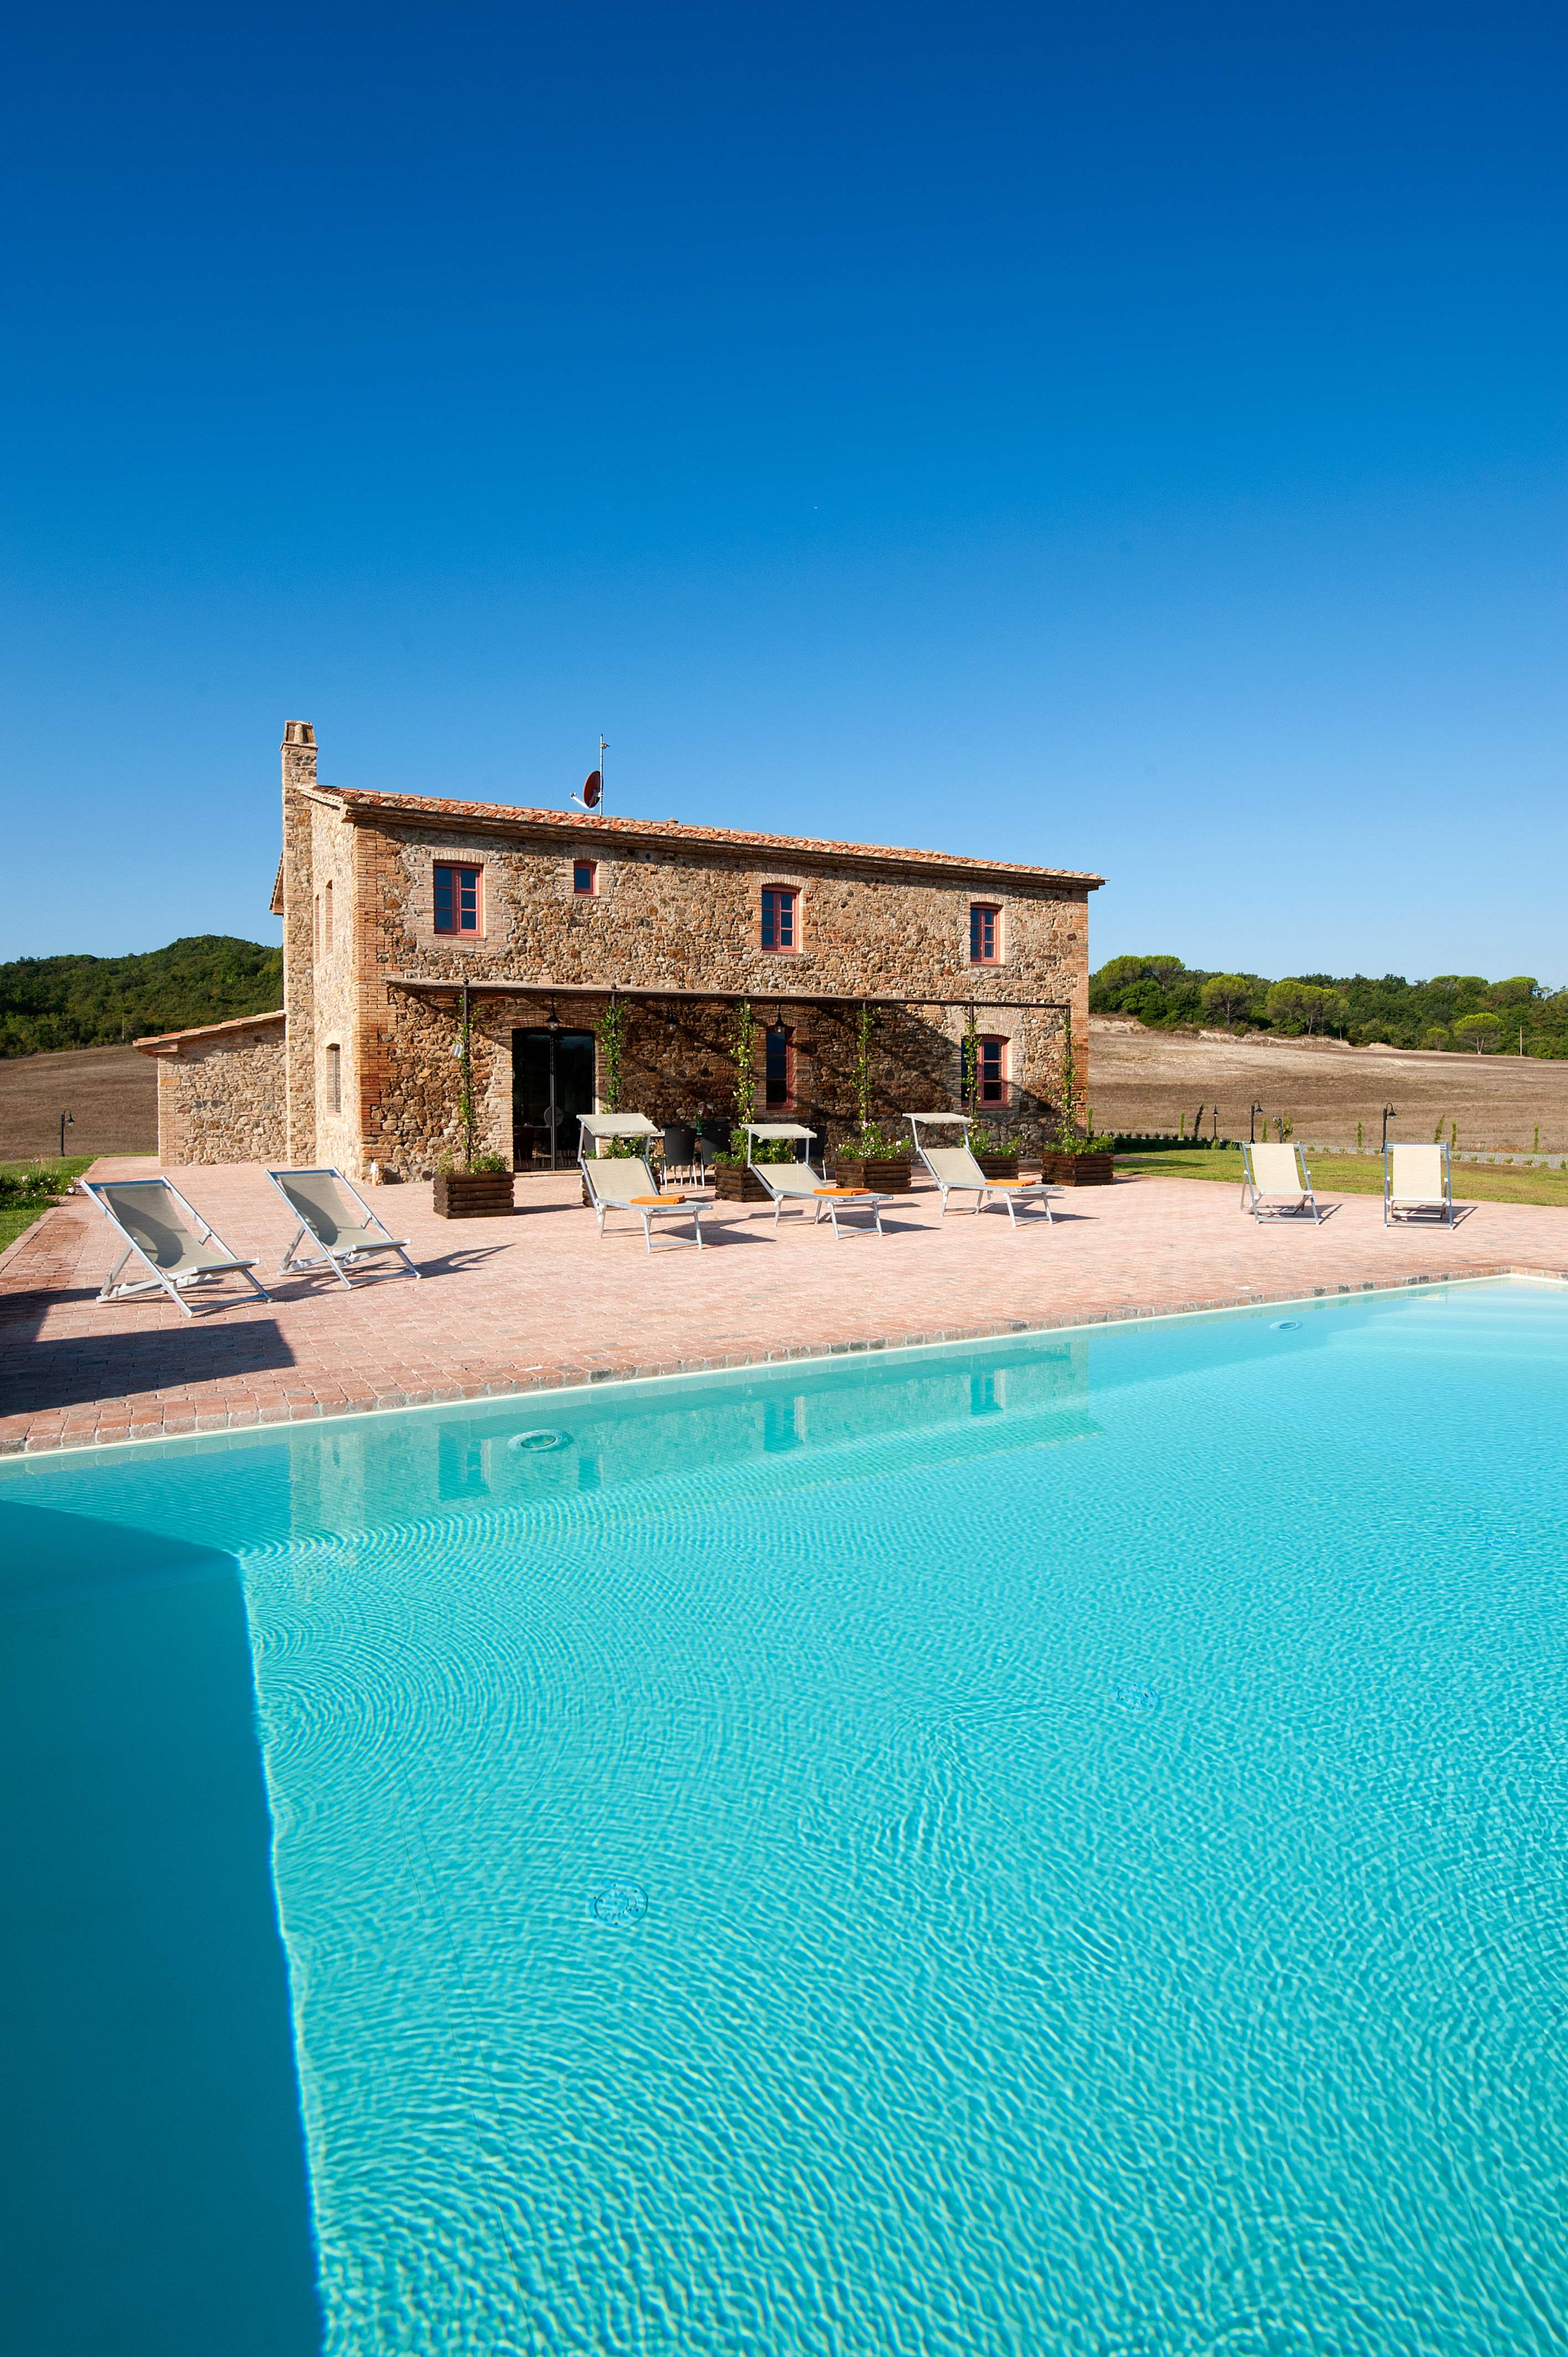 Podere I Gotti, 5 bedroom villa in Tuscany Coast, Tuscany Photo #12